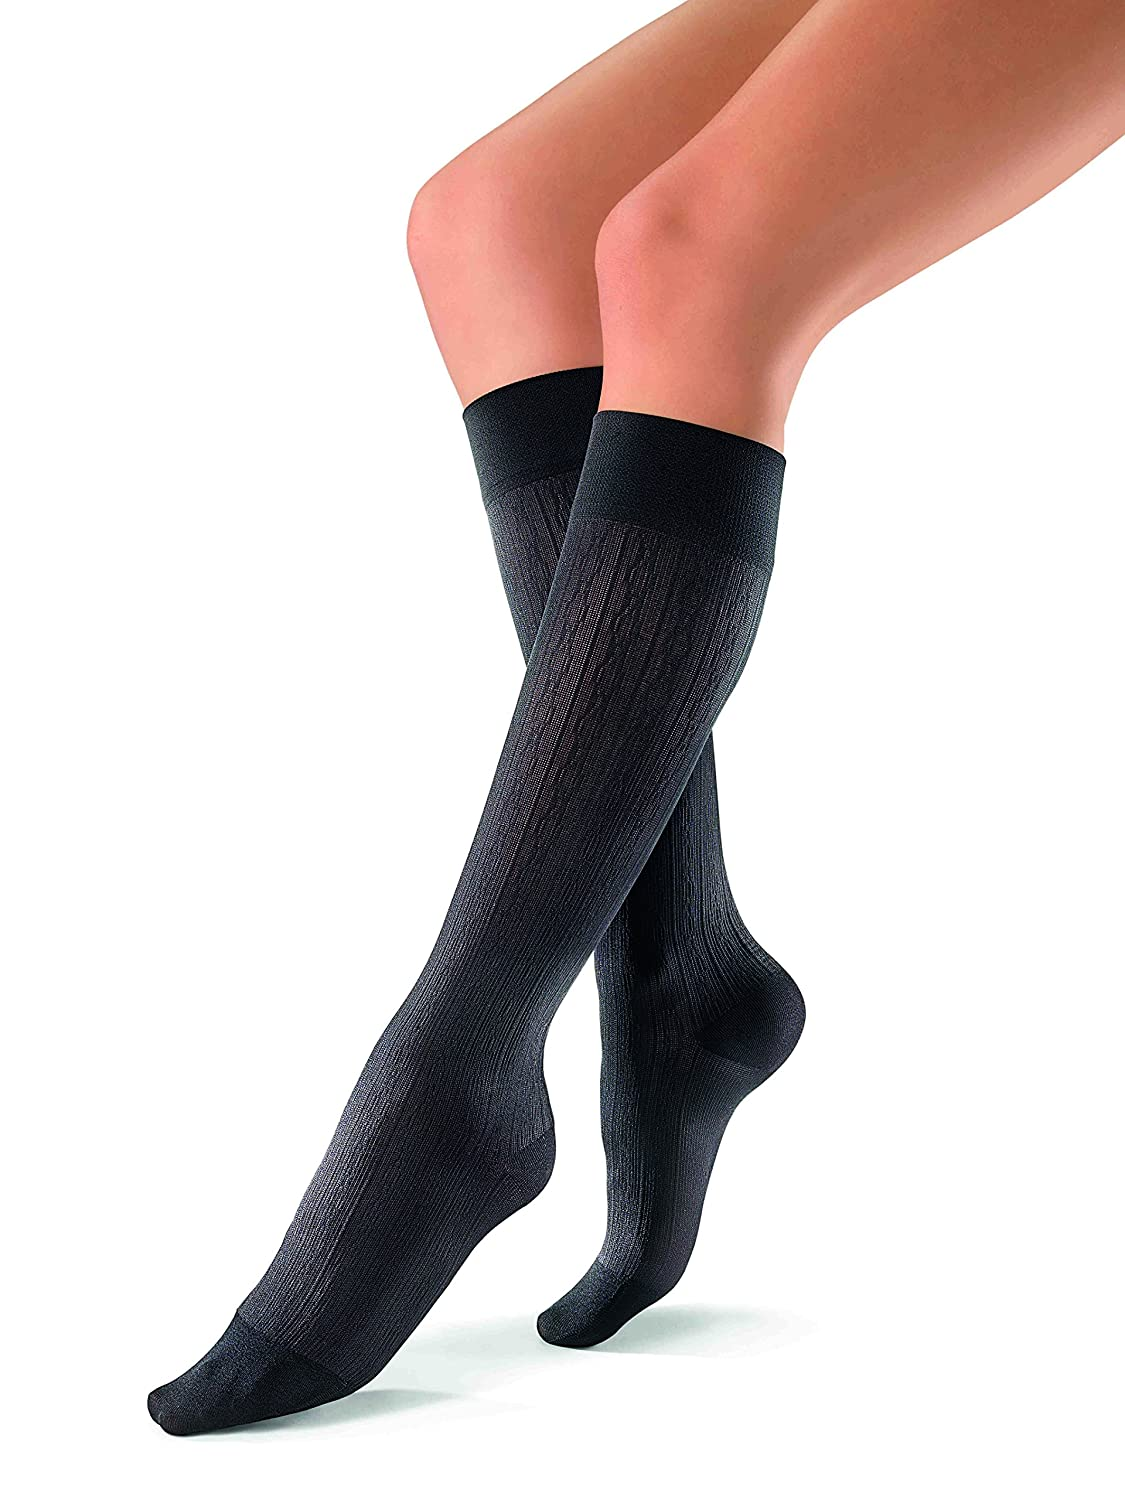 Jobst soSoft Women Brocade Knee Highs 30-40mmHg, M, Black by Jobst B00VS47JX8